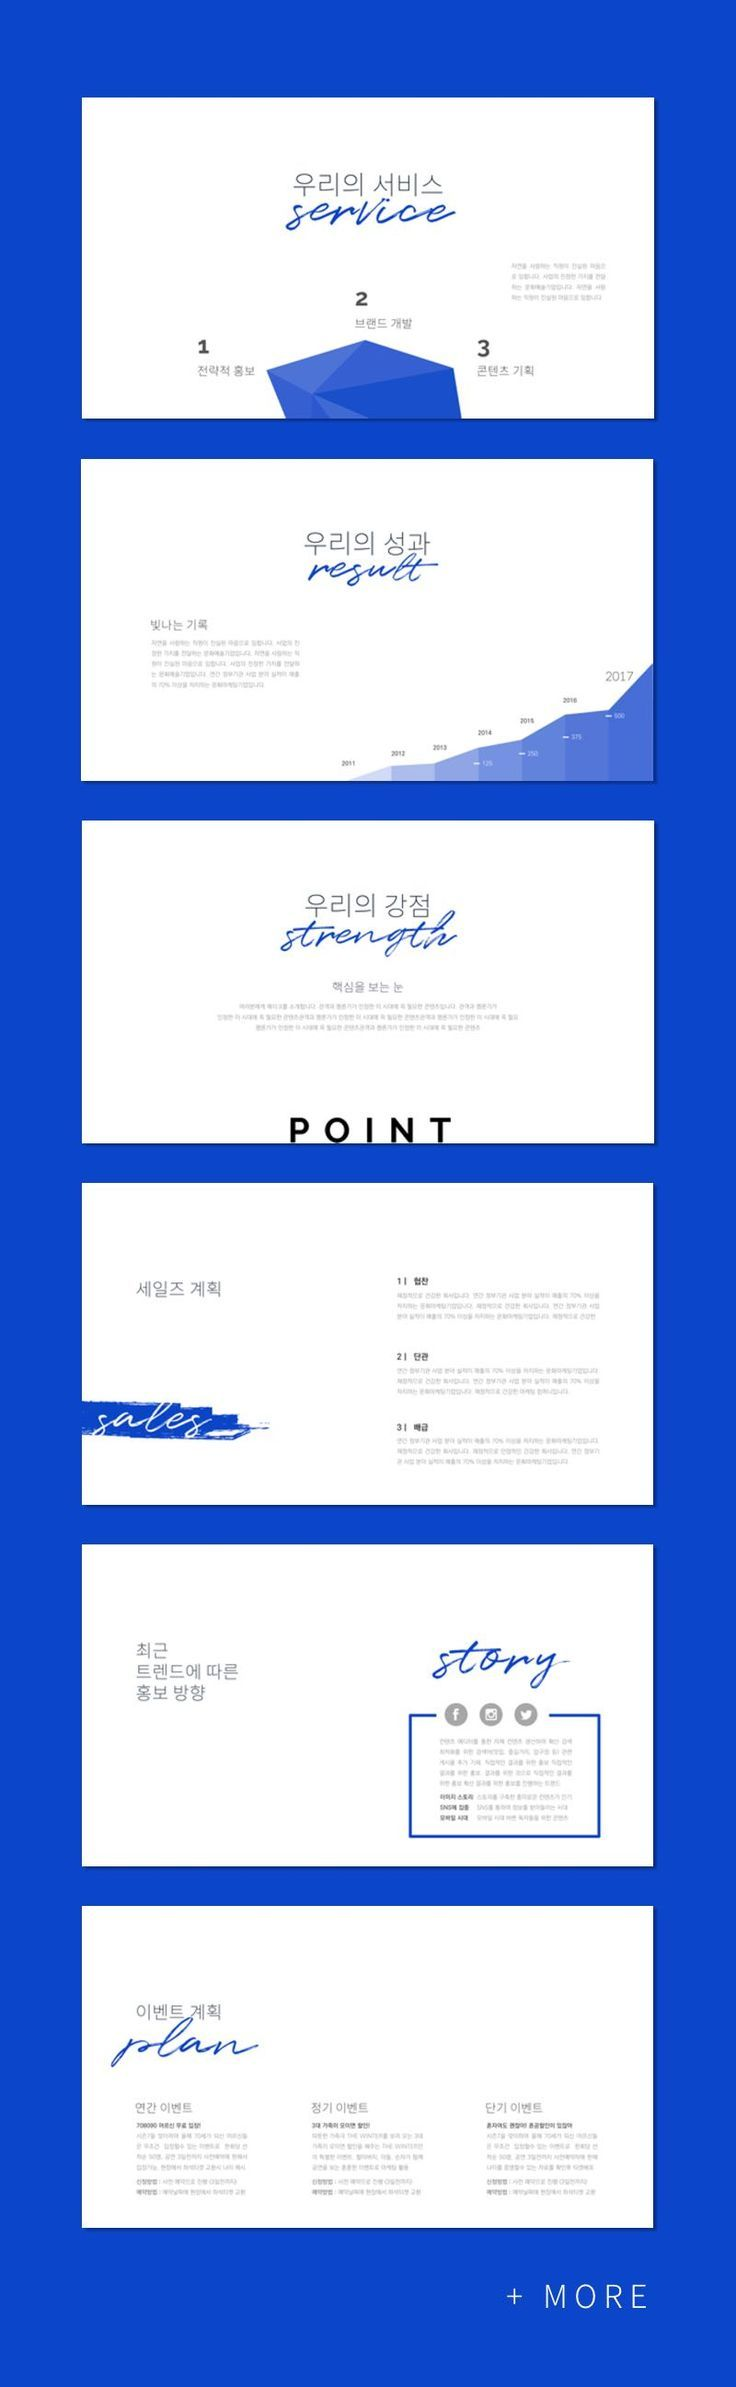 ppt point presentation template keynote simple minimal business marketing portfolio web ui design pinterest template